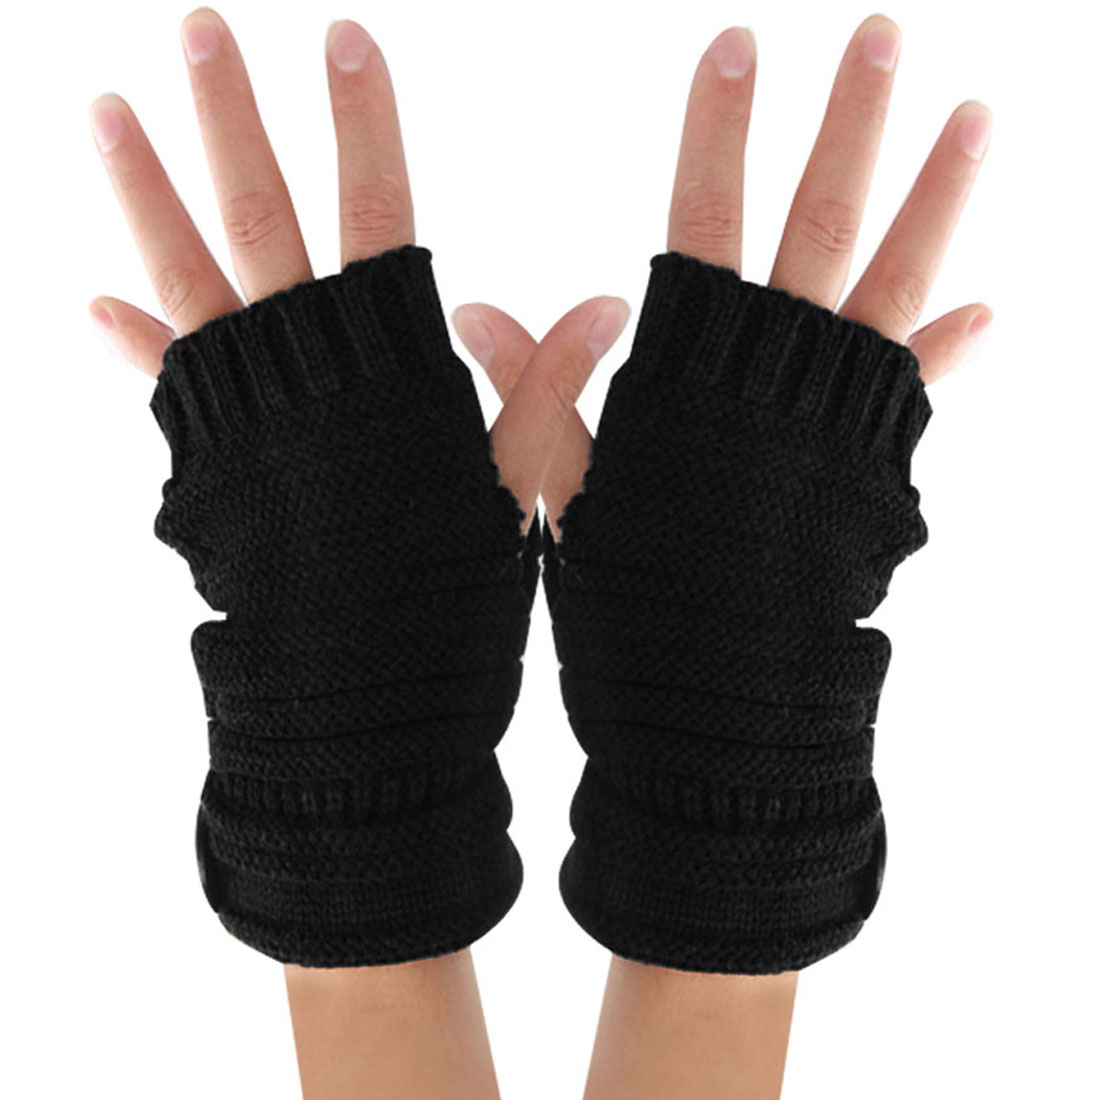 Unisex Black Fingerless One Button Decor Ribbing Detail Textured Warmers